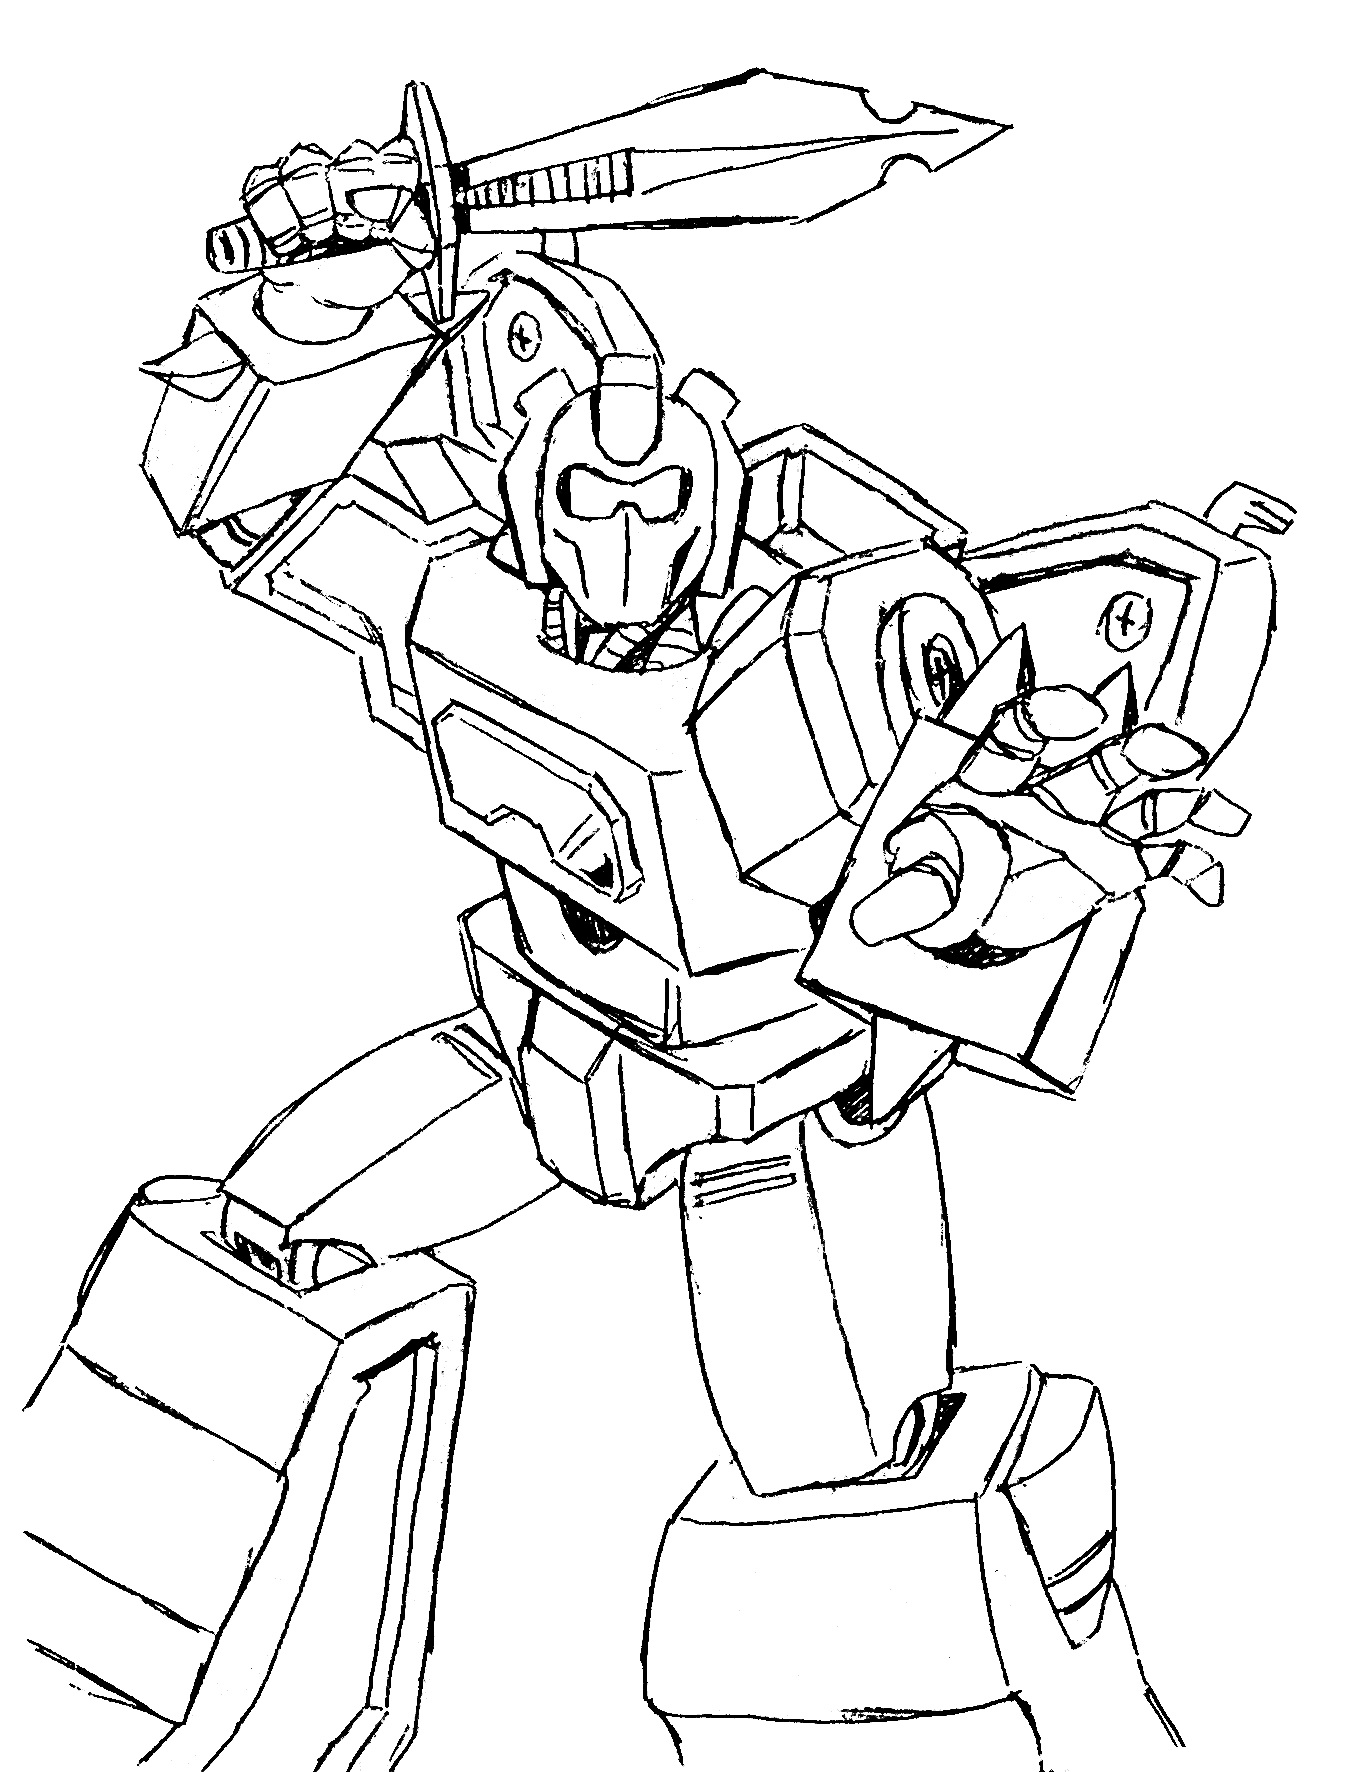 Transformers Starscream Coloring Page Free Coloring Pages Online